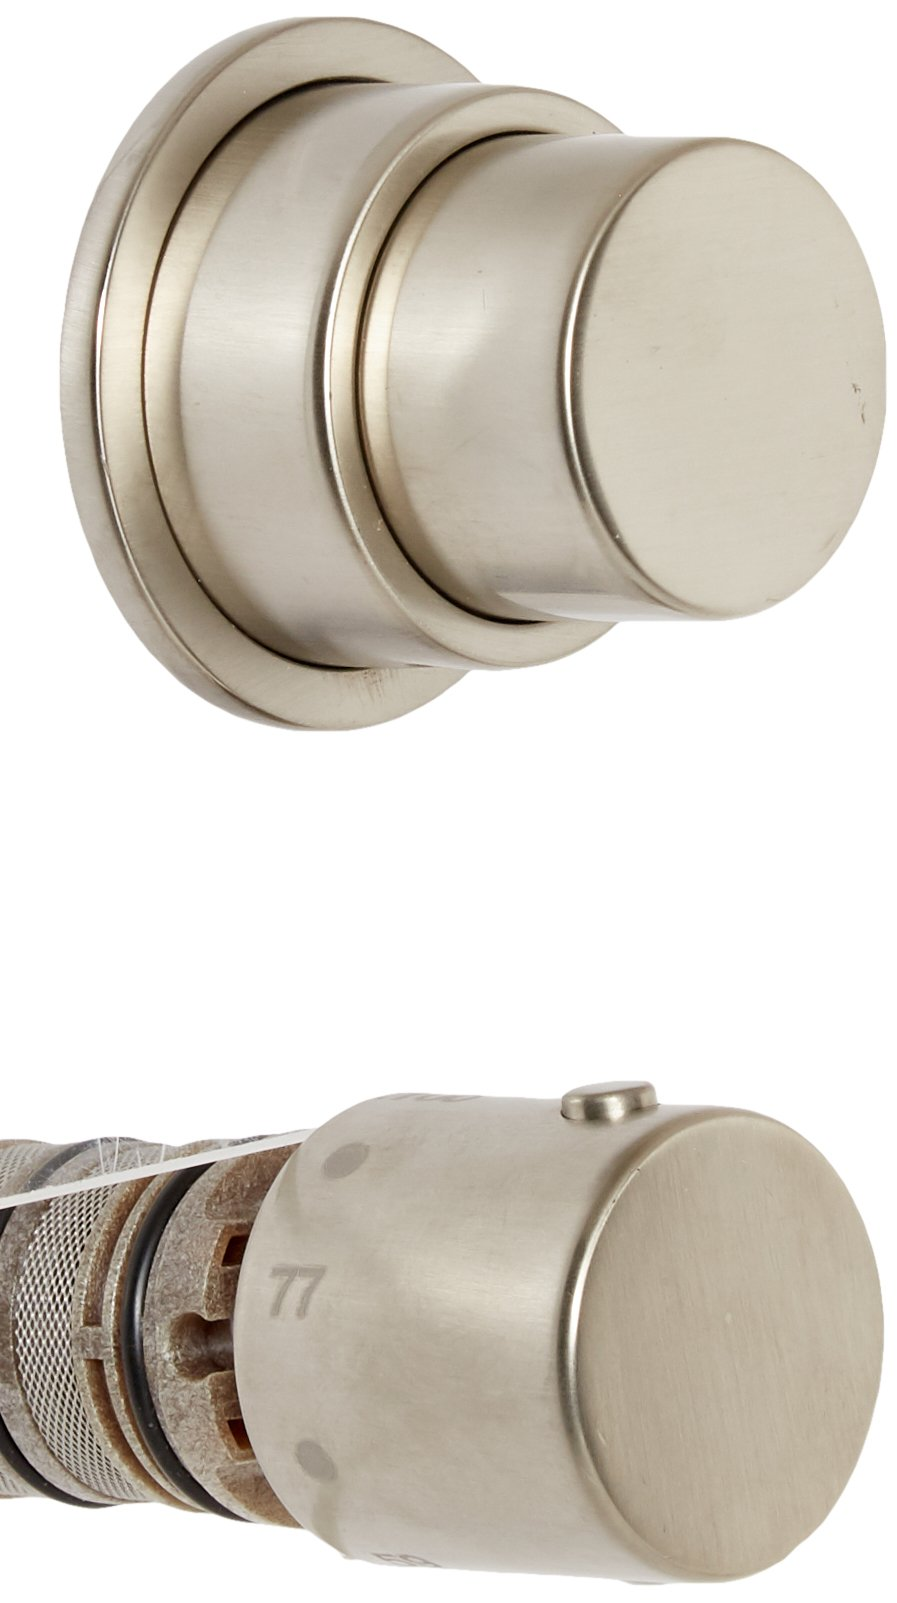 La Toscana 89CR690TH Lady Thermostatic Shower Valve, Chrome